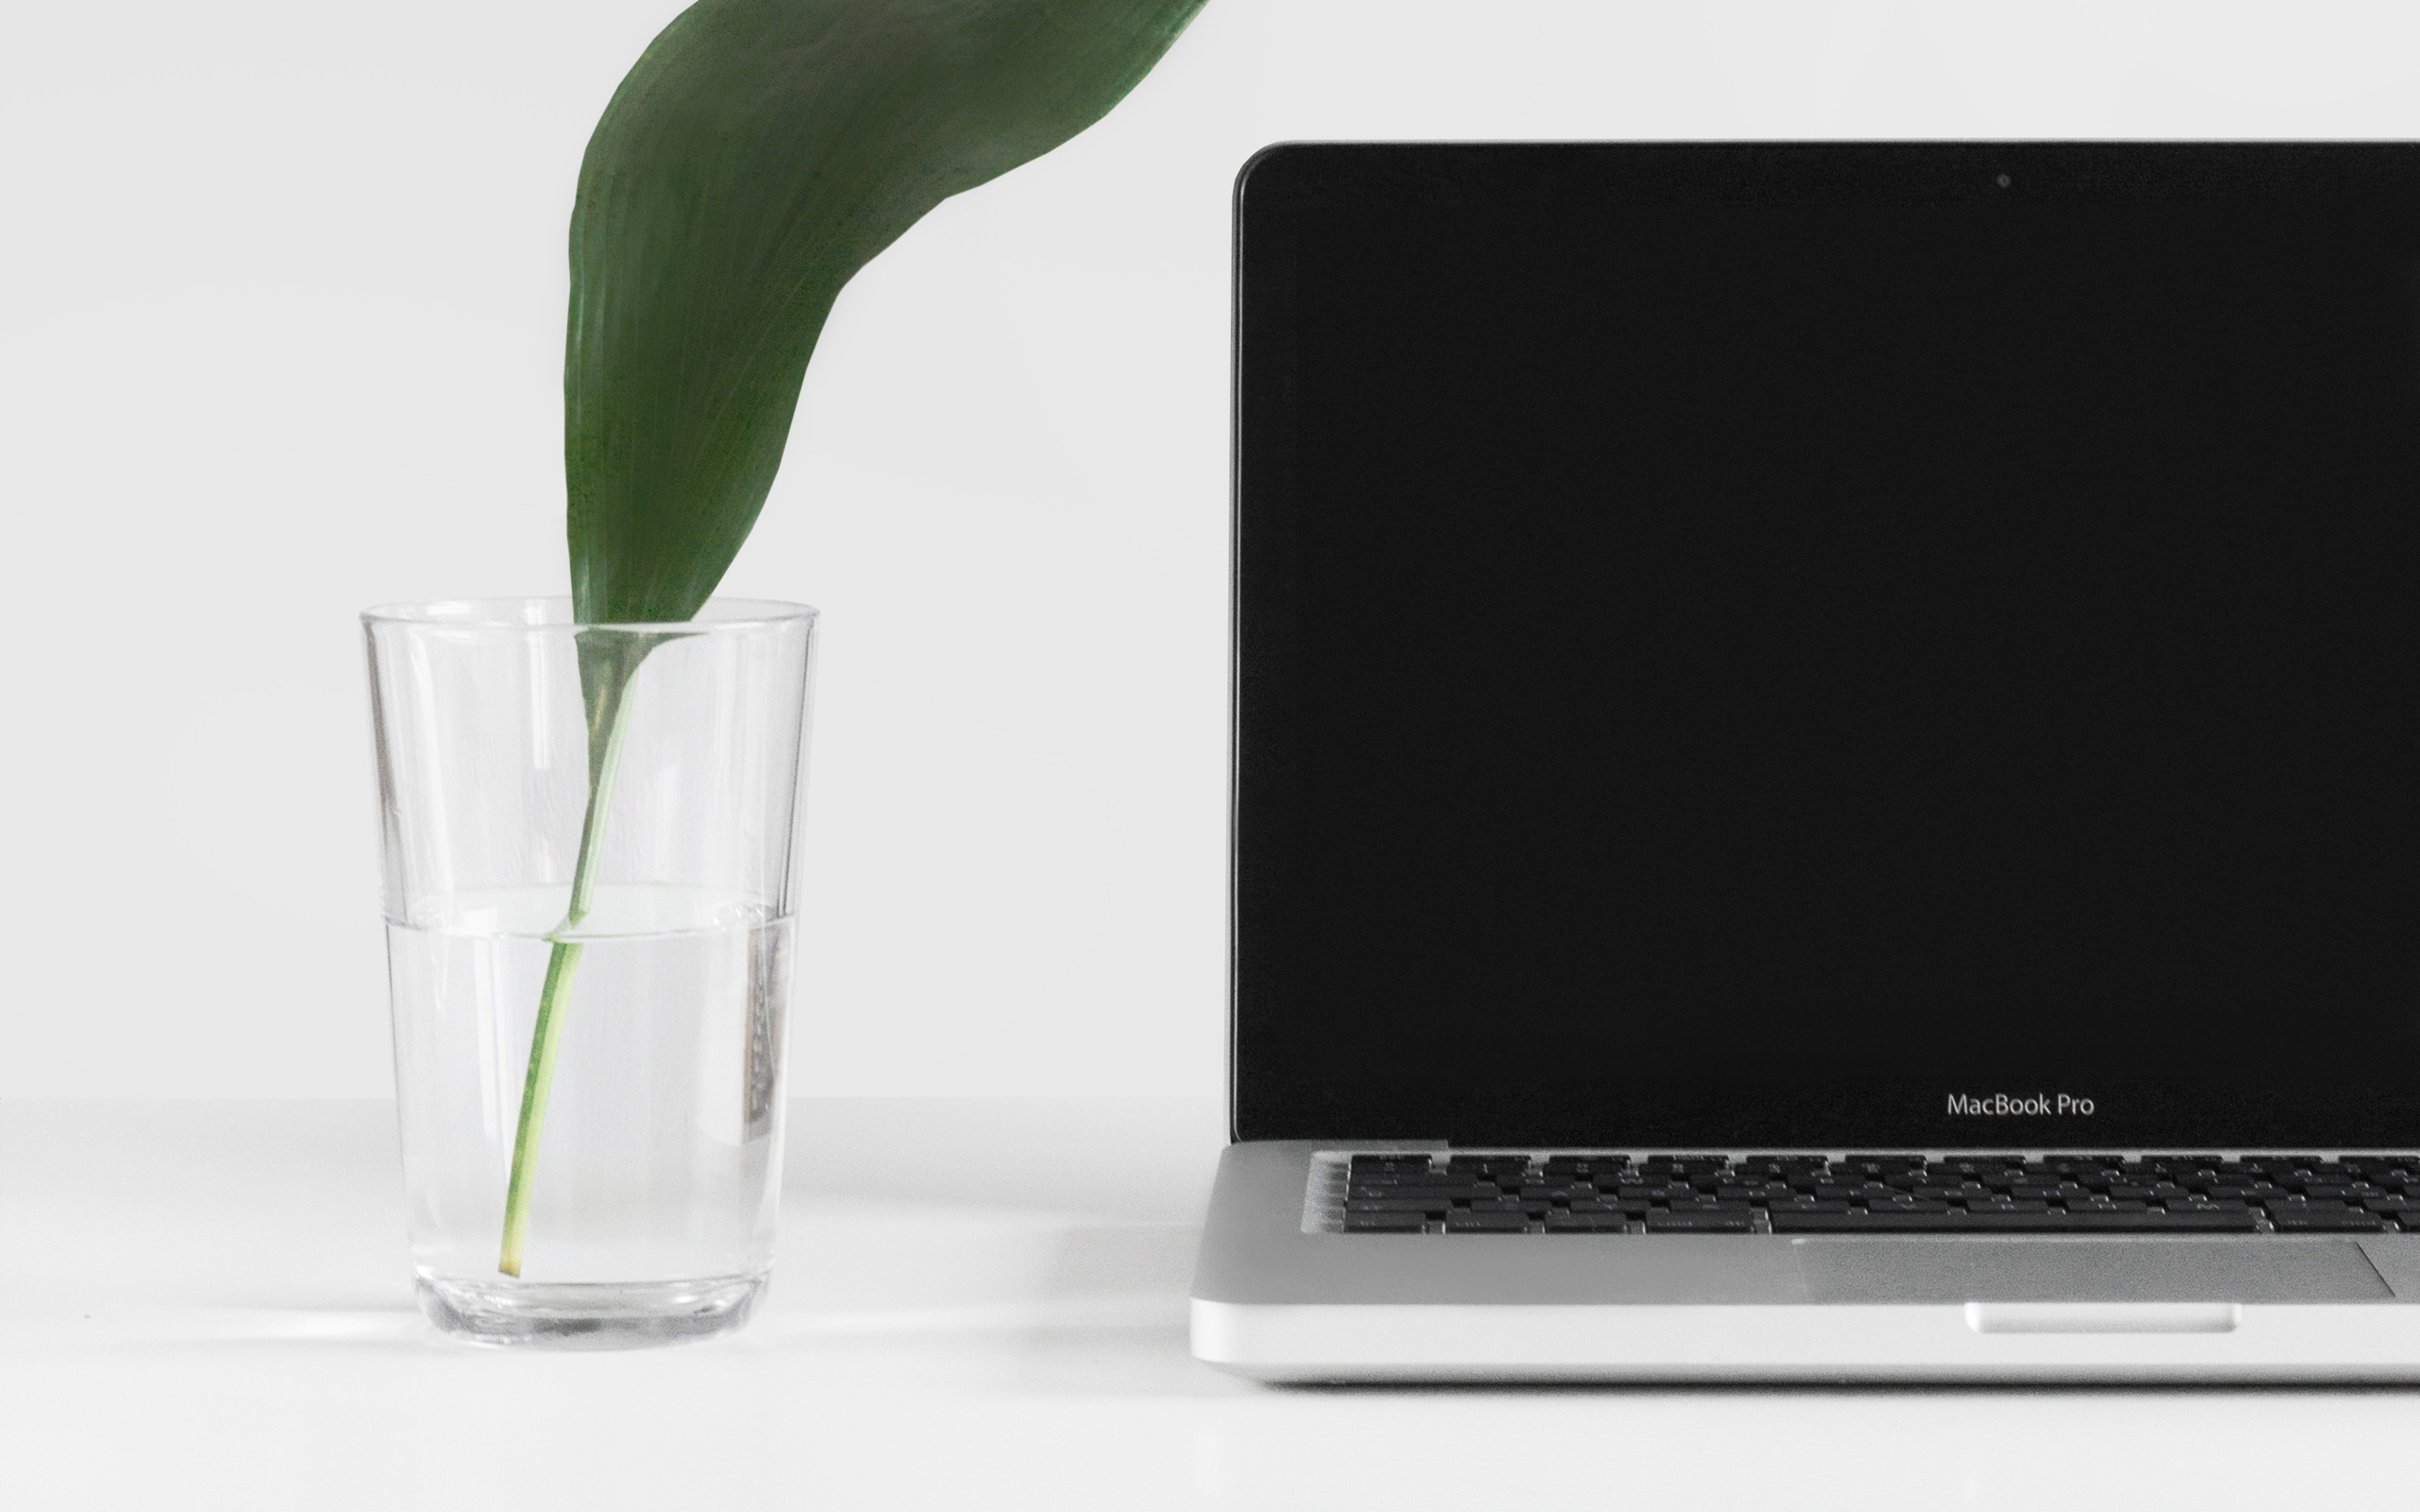 5 reasons why a clean desk benefits business growth